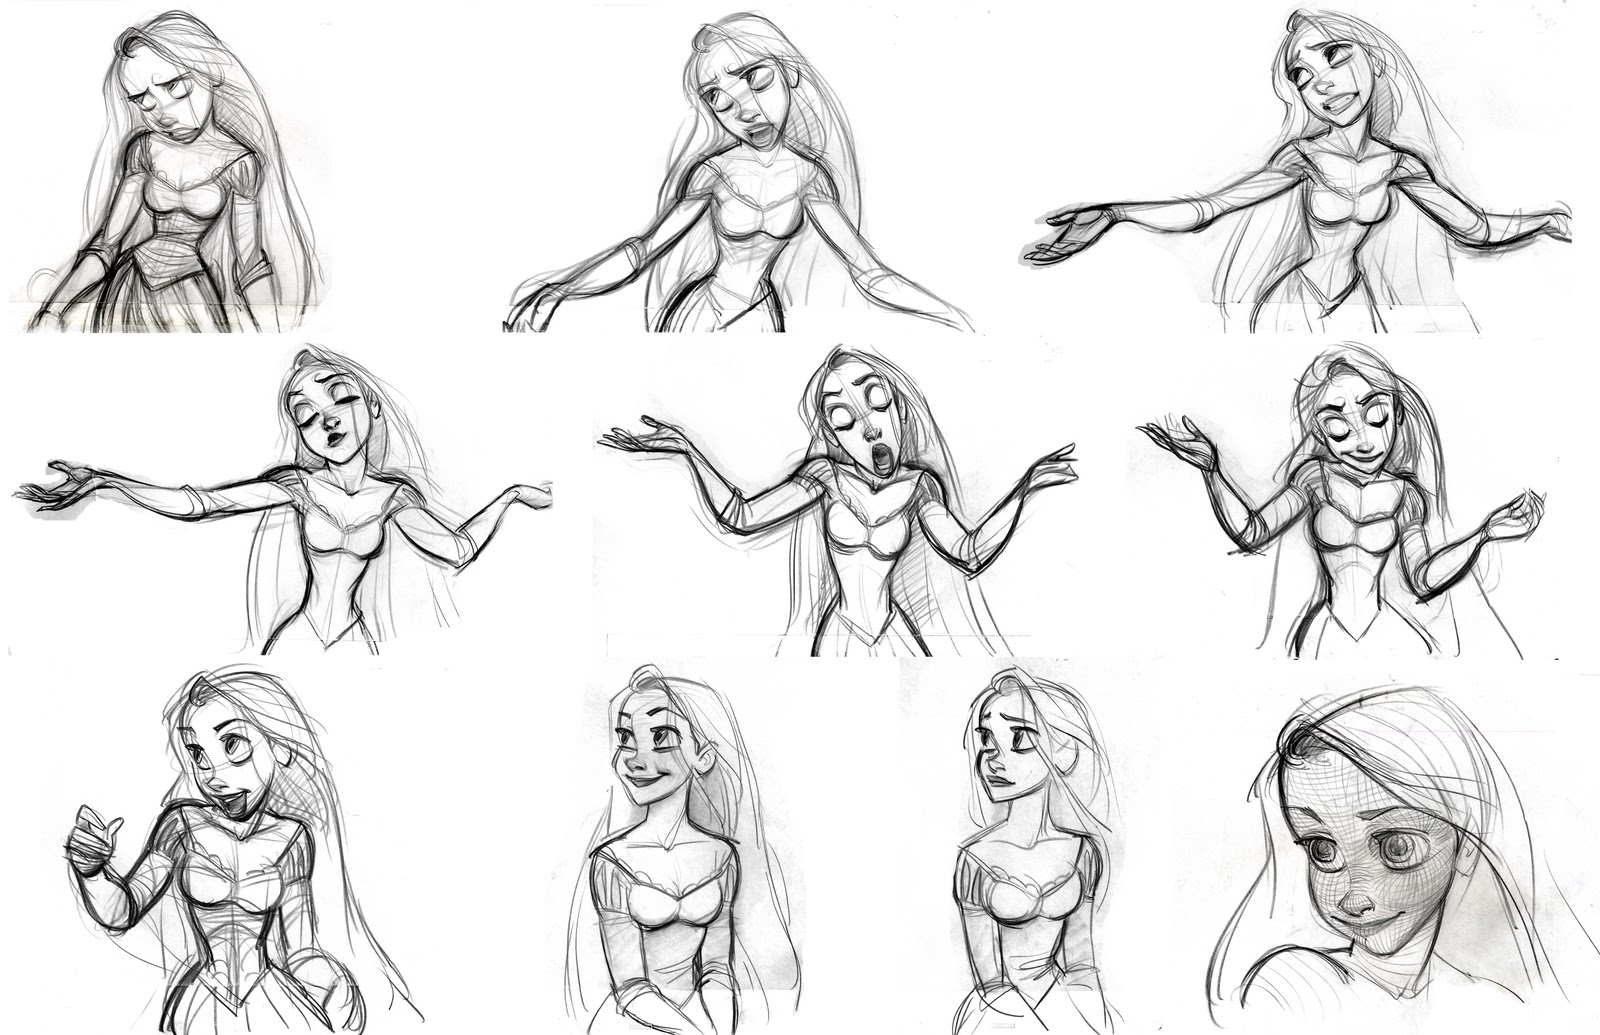 How To Draw Disney Style Characters Tangled Concept Art The Art Of